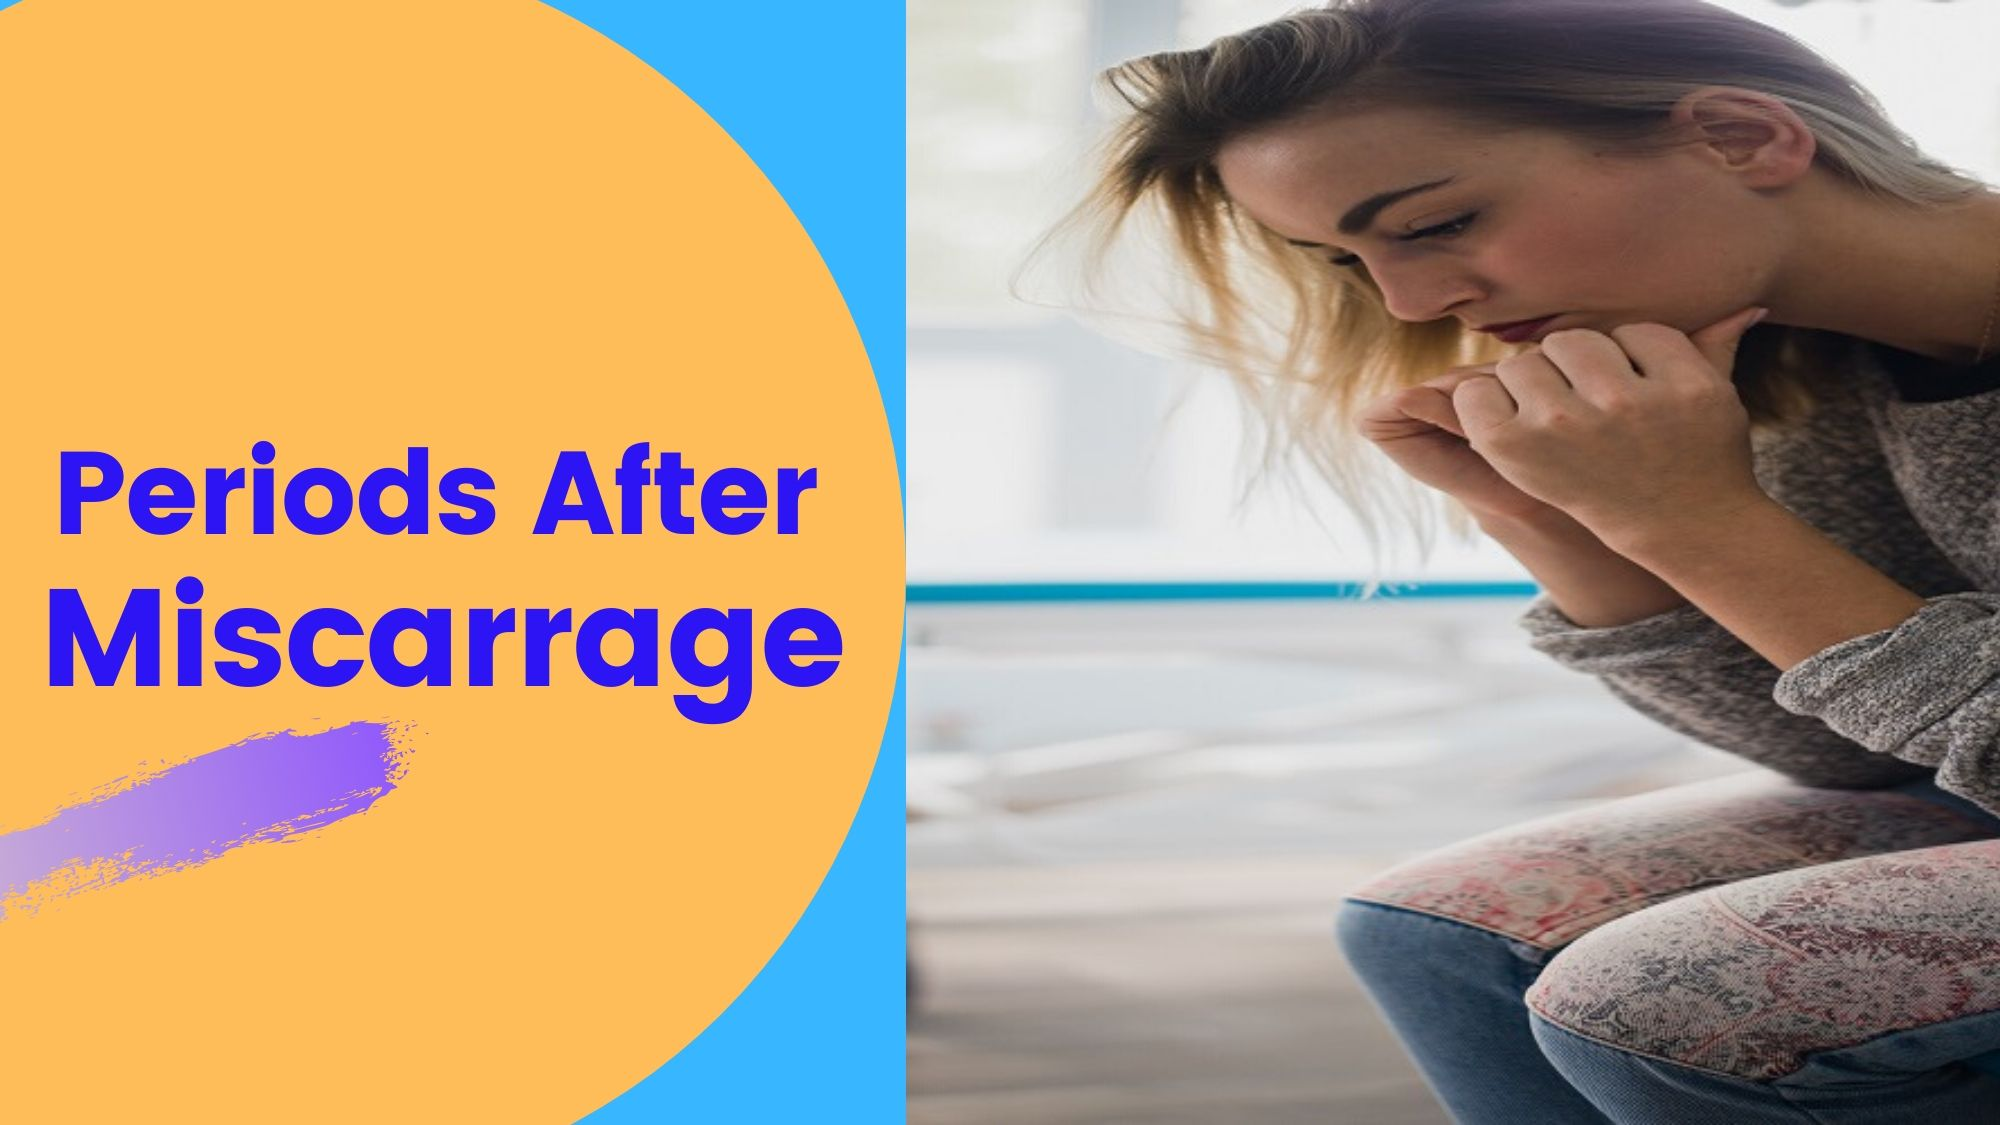 Period After Miscarriage